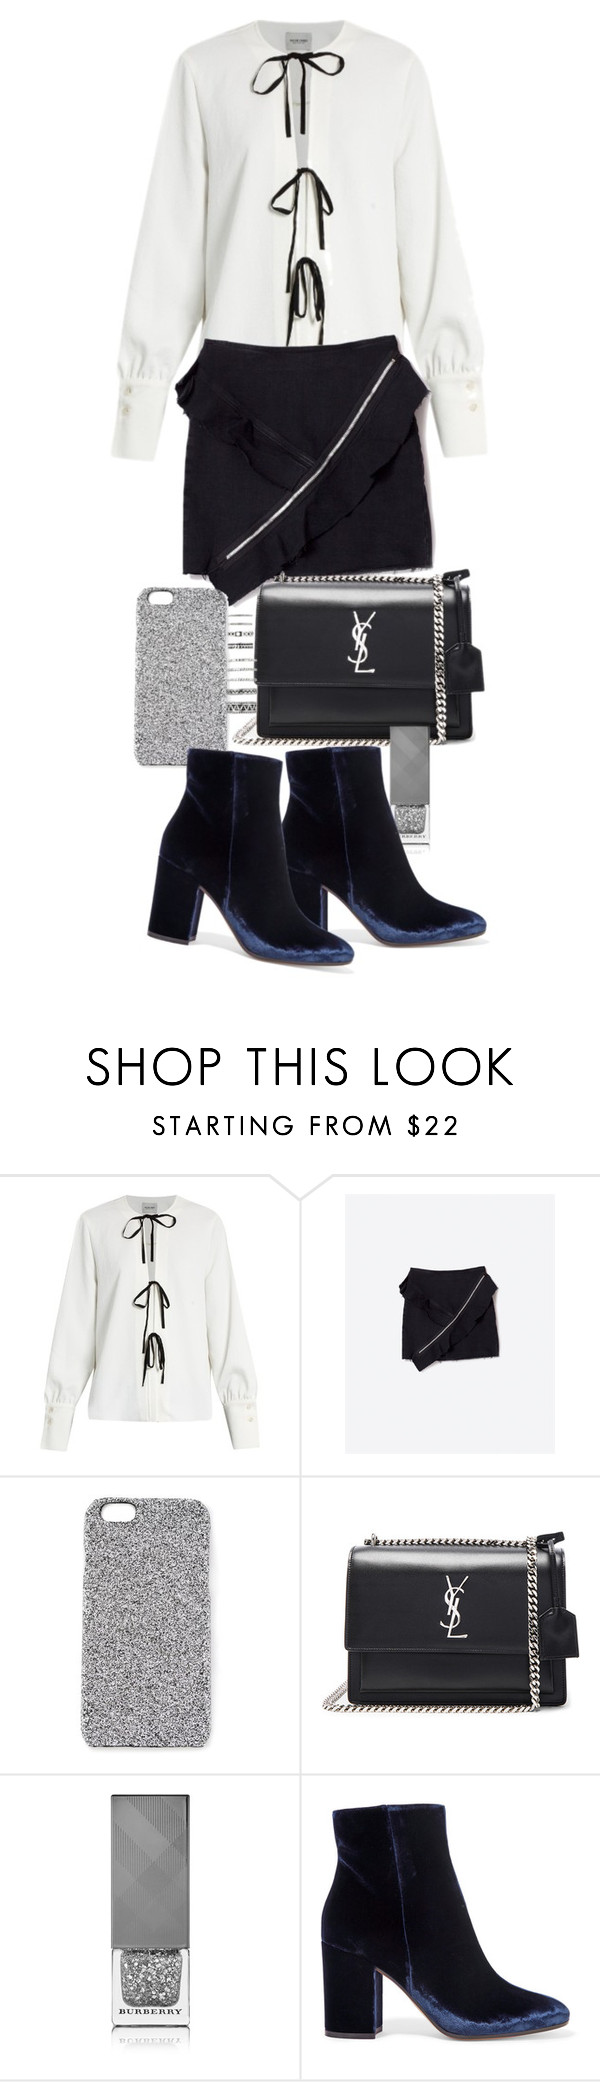 """Untitled #20692"" by florencia95 ❤ liked on Polyvore featuring Rachel Comey, 2Me Style, Yves Saint Laurent, Burberry, Gianvito Rossi and Forever 21"